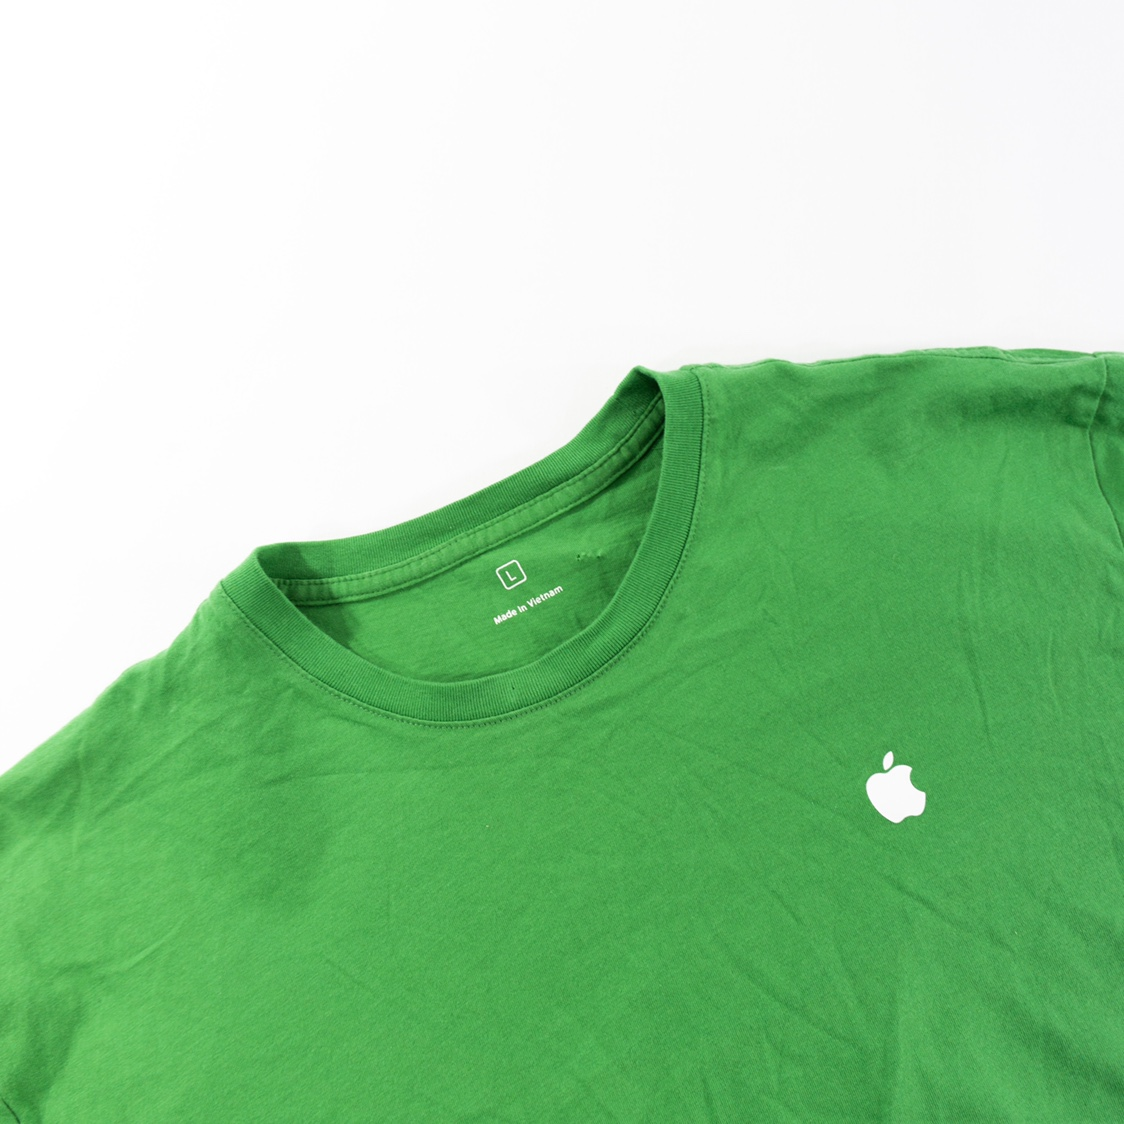 Apple Logo T Shirt Men's Size    - Depop